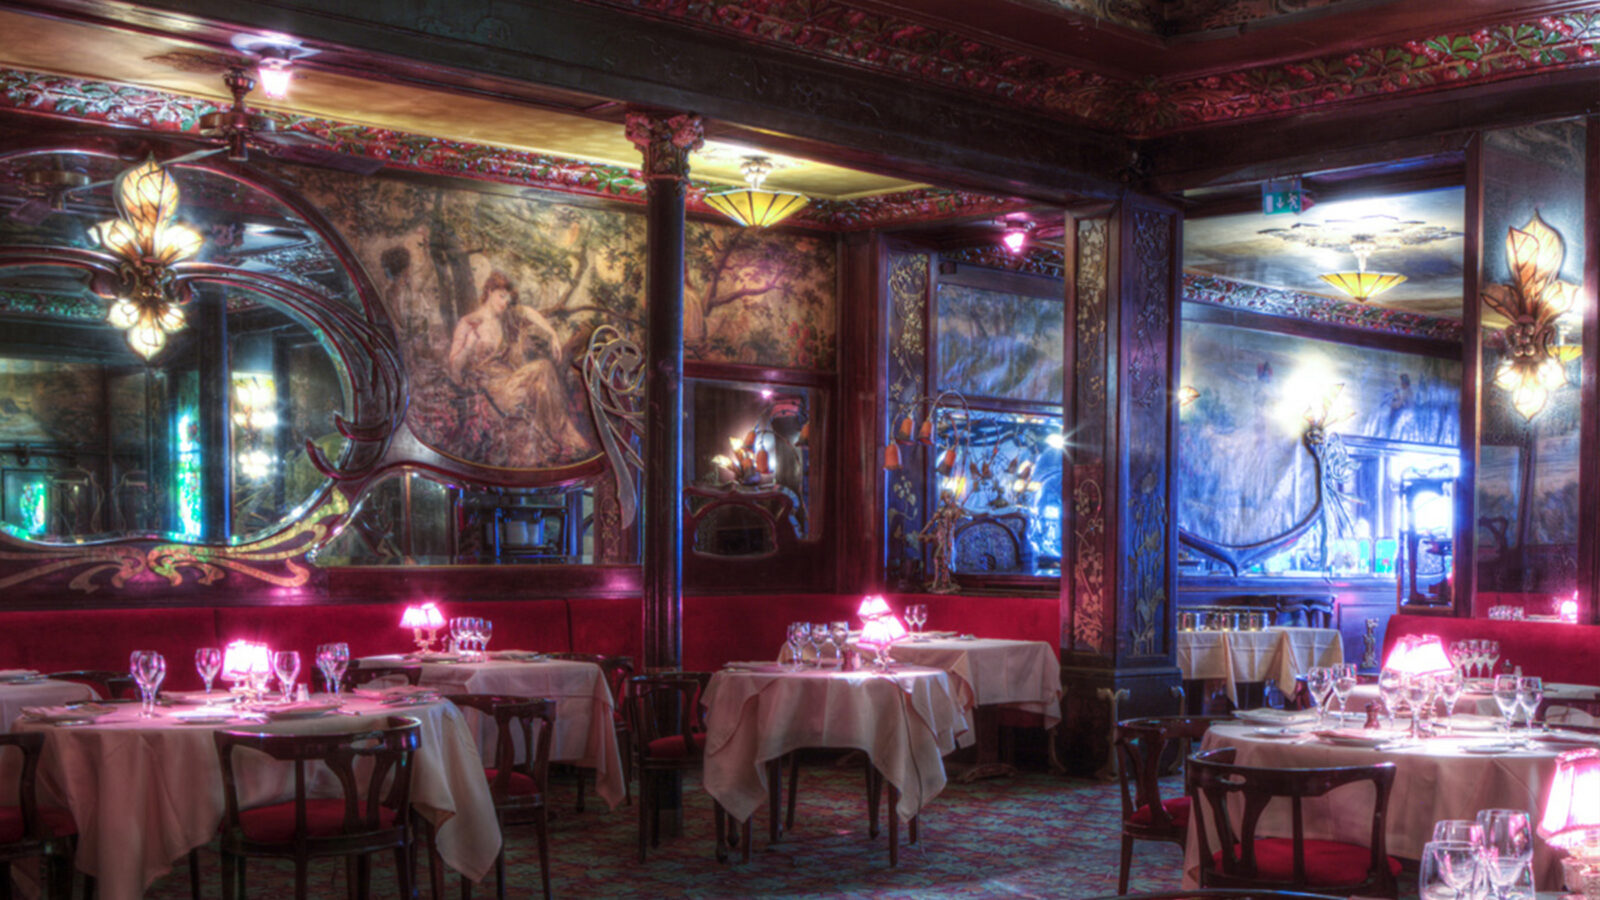 this is a picture of the Maxim's restaurant in Paris